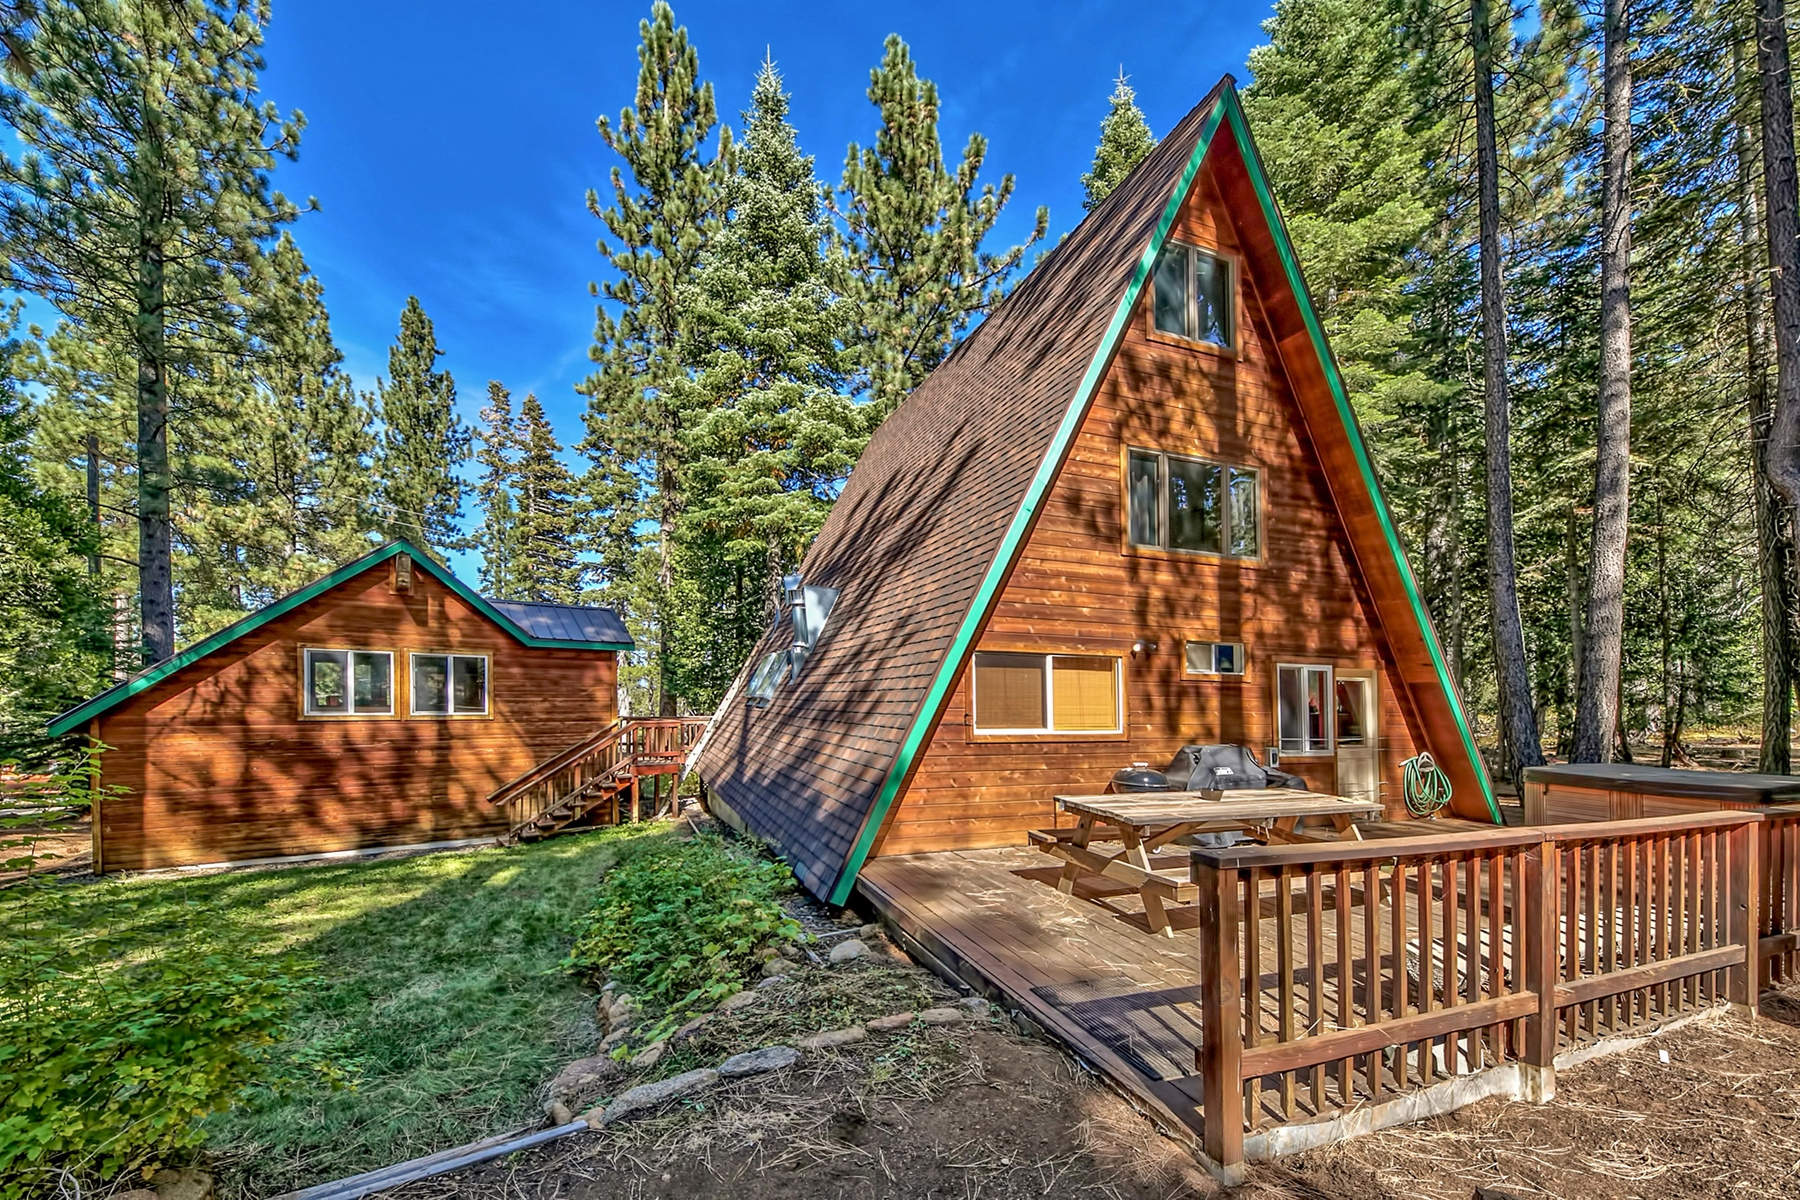 Additional photo for property listing at 1687 Mohican Drive, South Lake Tahoe, CA 96150 1687 Mohican Drive South Lake Tahoe, California 96150 United States